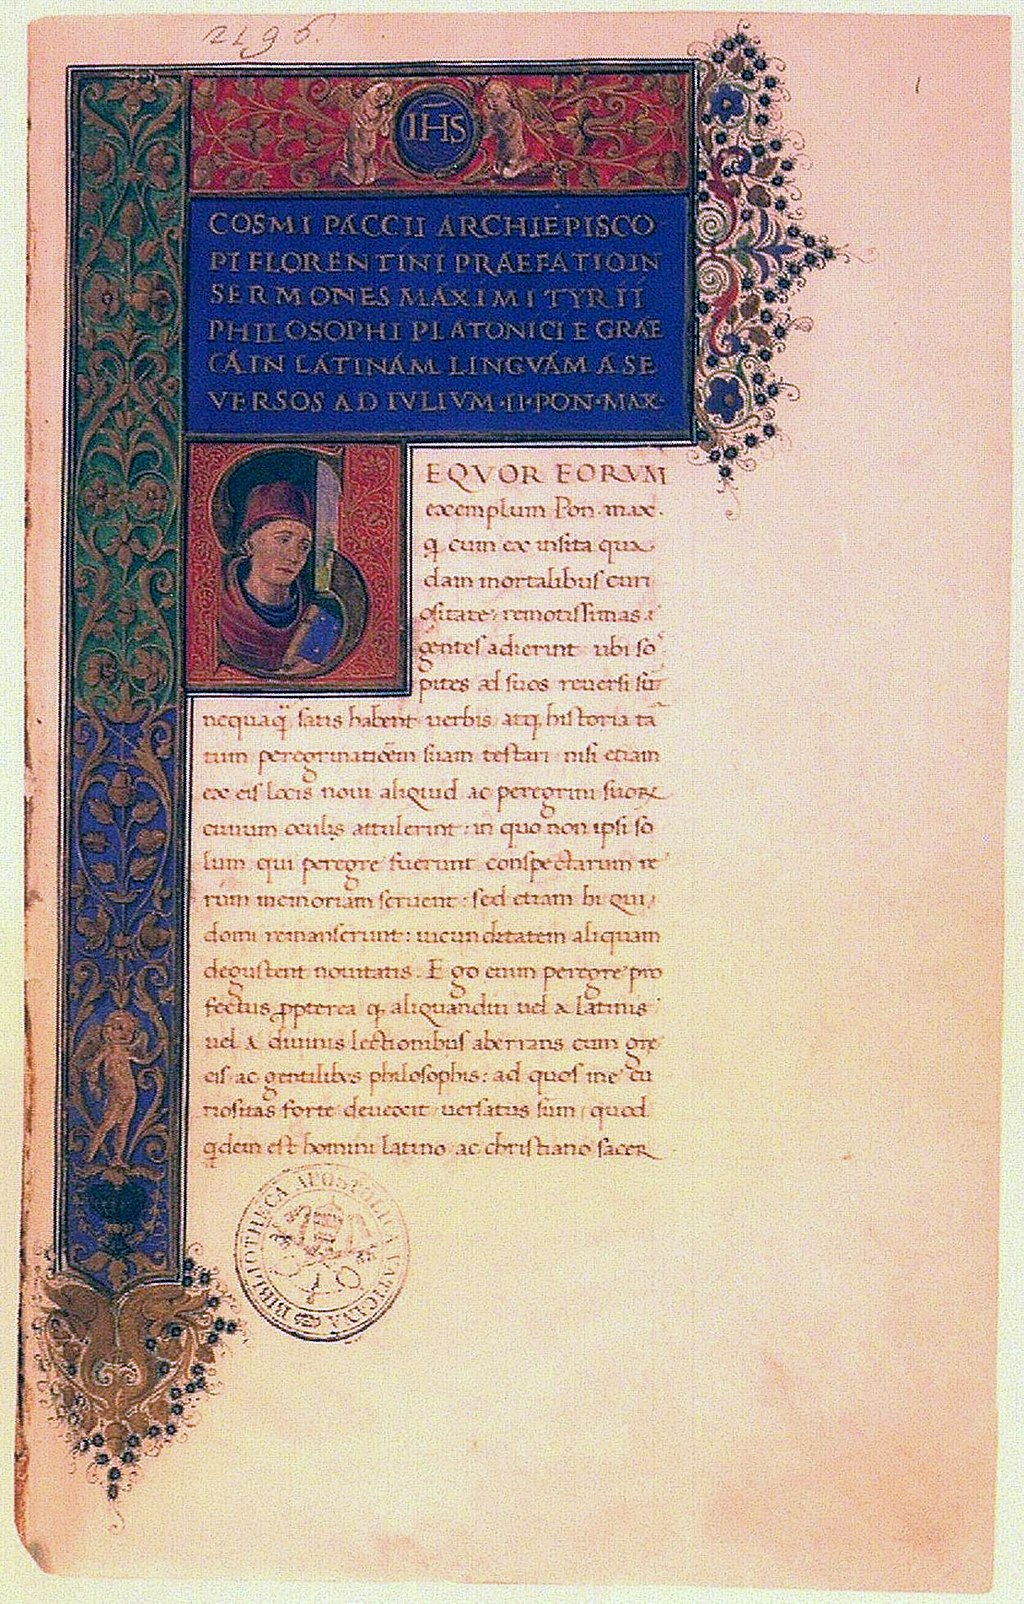 Discourses of Maximus of Tyre in the Latin translation by Cosimo de' Pazzi, Archbishop of Florence  | Early 16th century